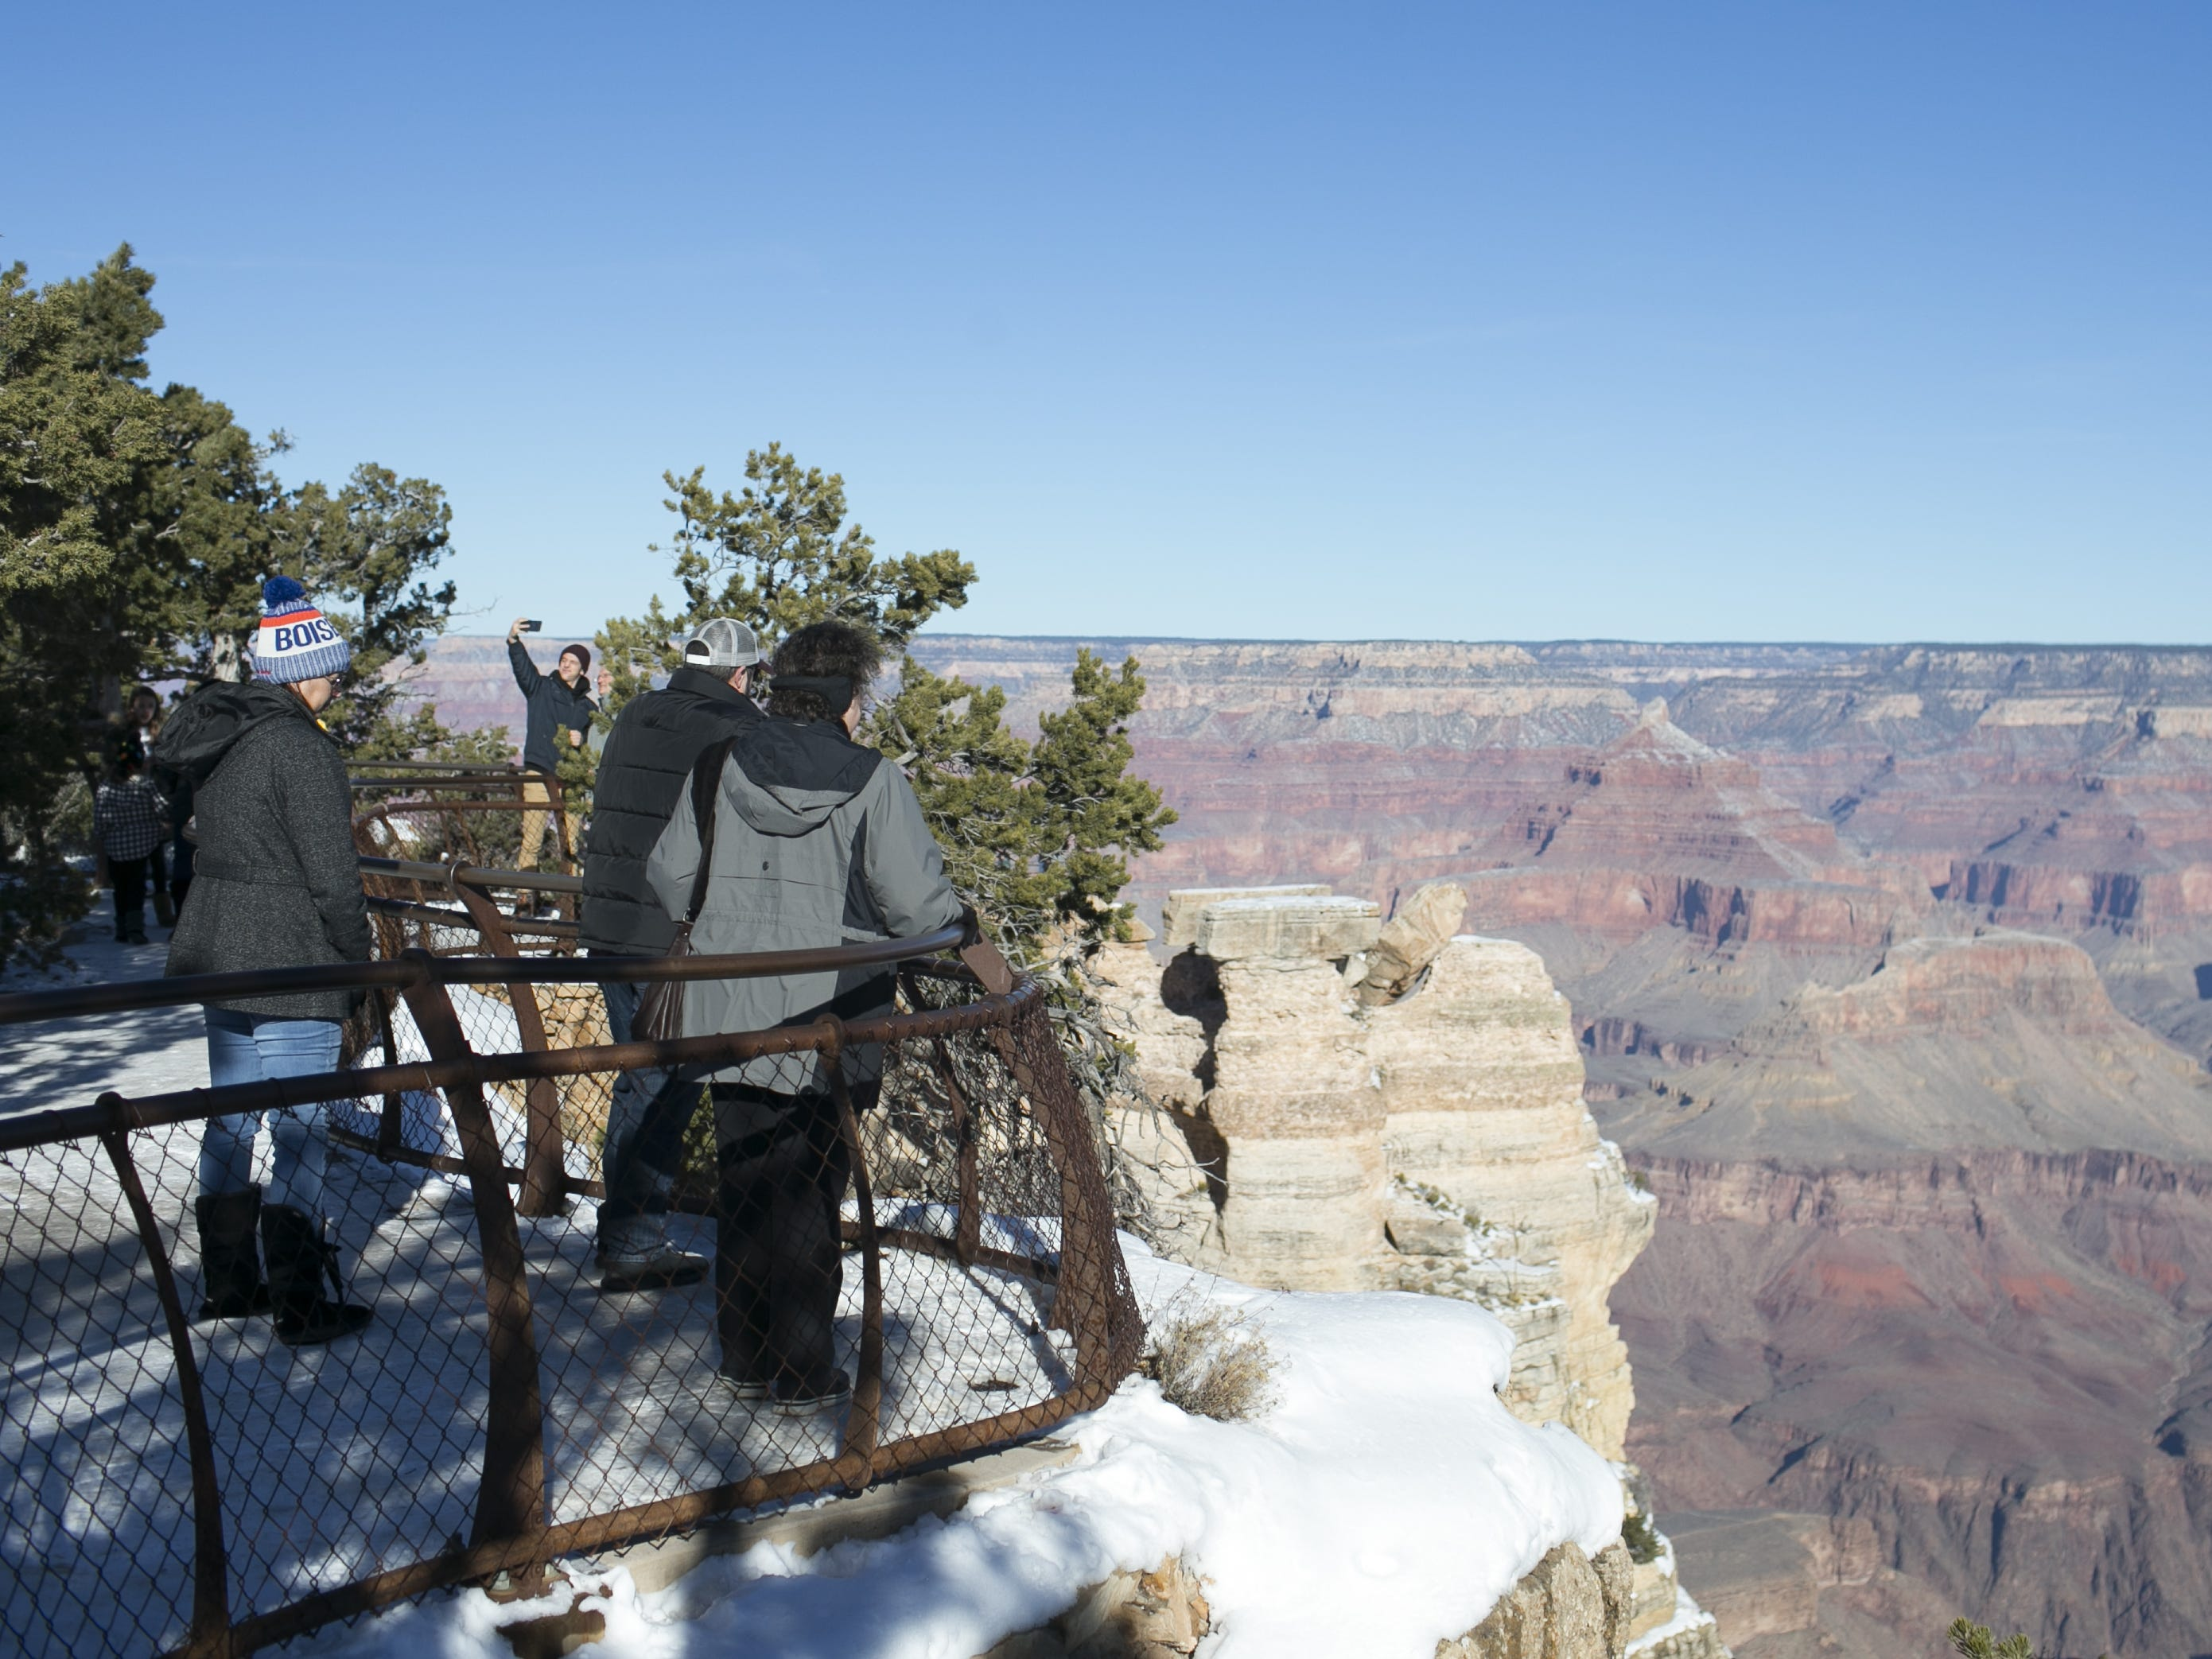 Visitors look out over the edge at Grand Canyon National Park. Fences and railings mark the boundaries of the canyon's edges, but are not too tall to scale.